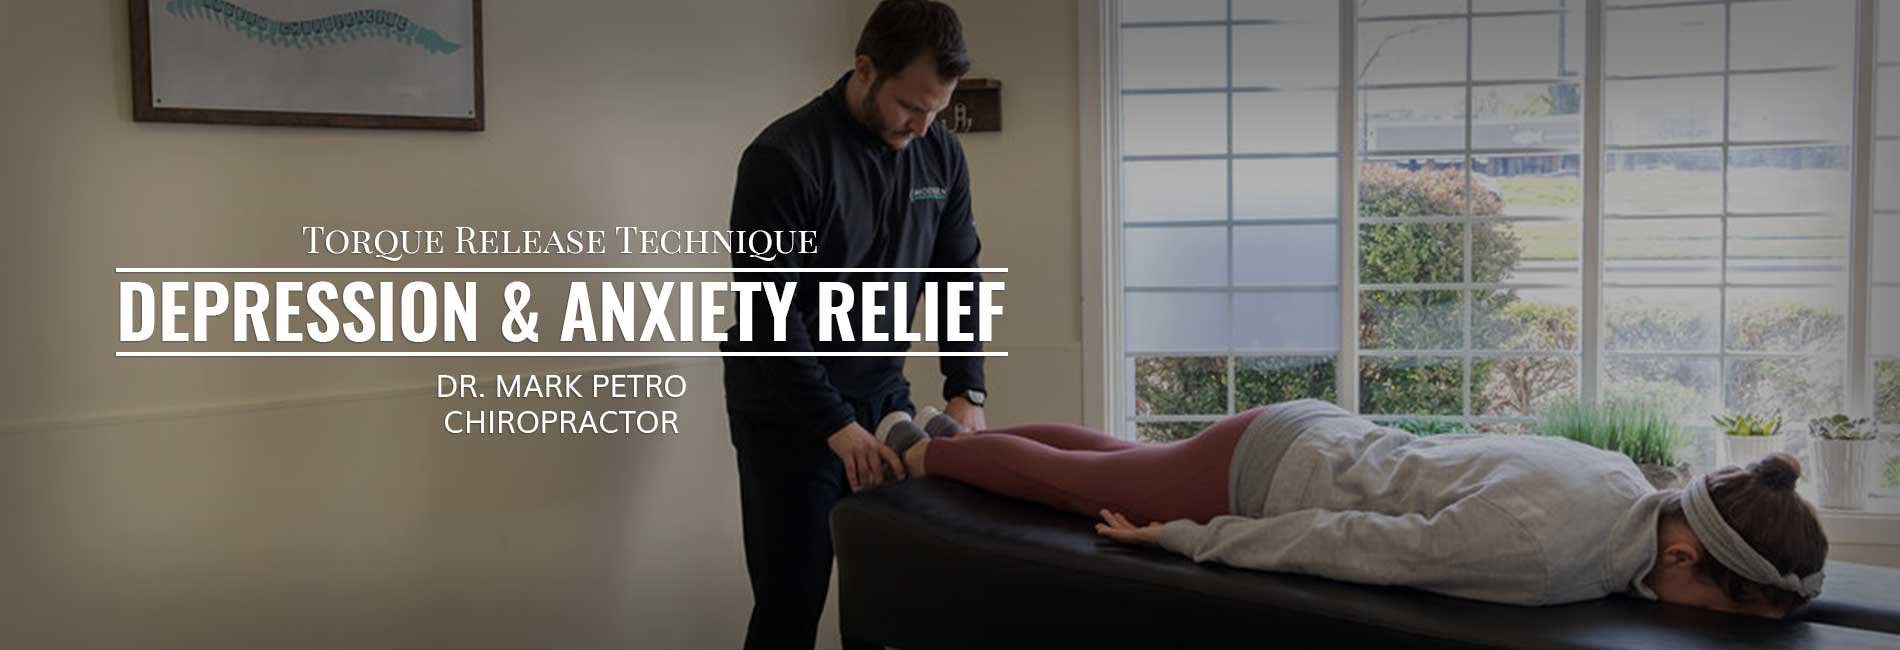 Depression and anxiety relief – TRT Chiropractor